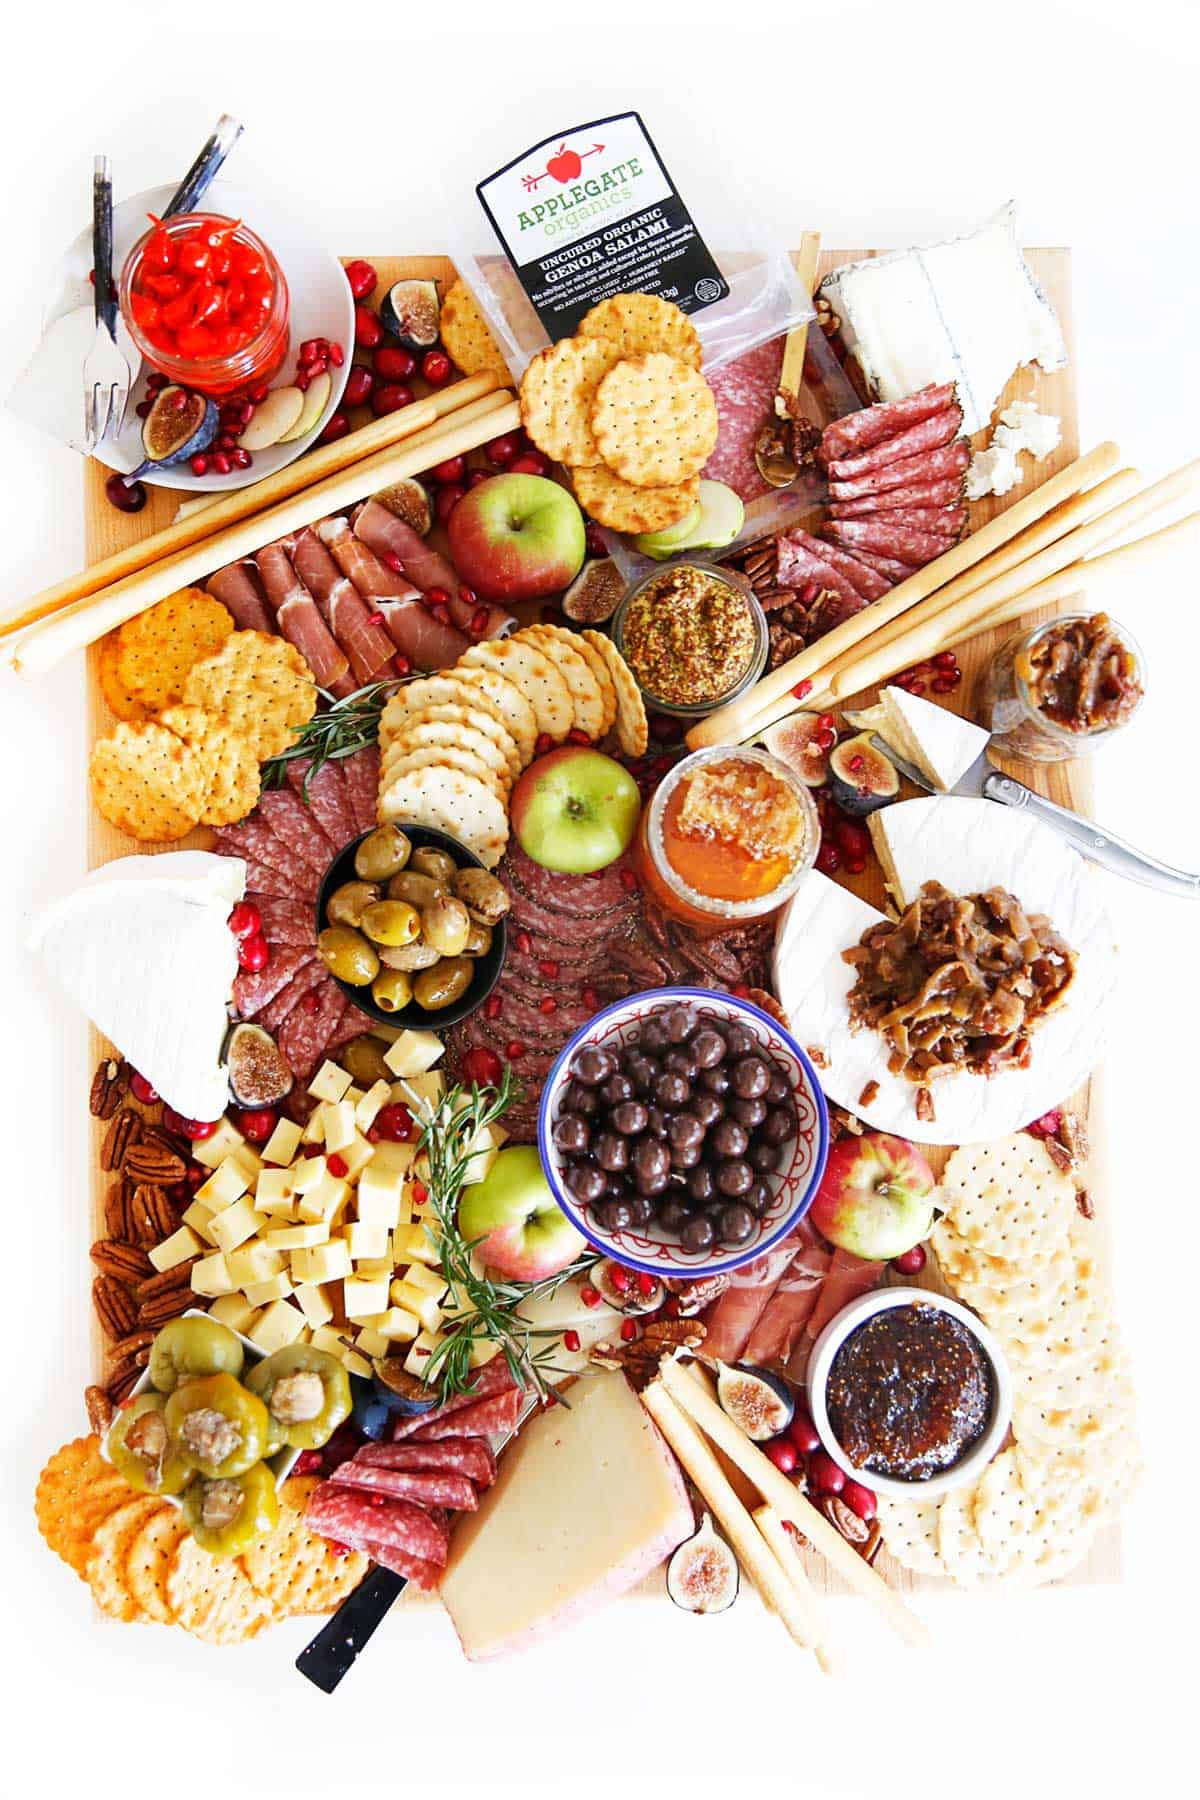 Large Charcuterie Board full of meats and cheese